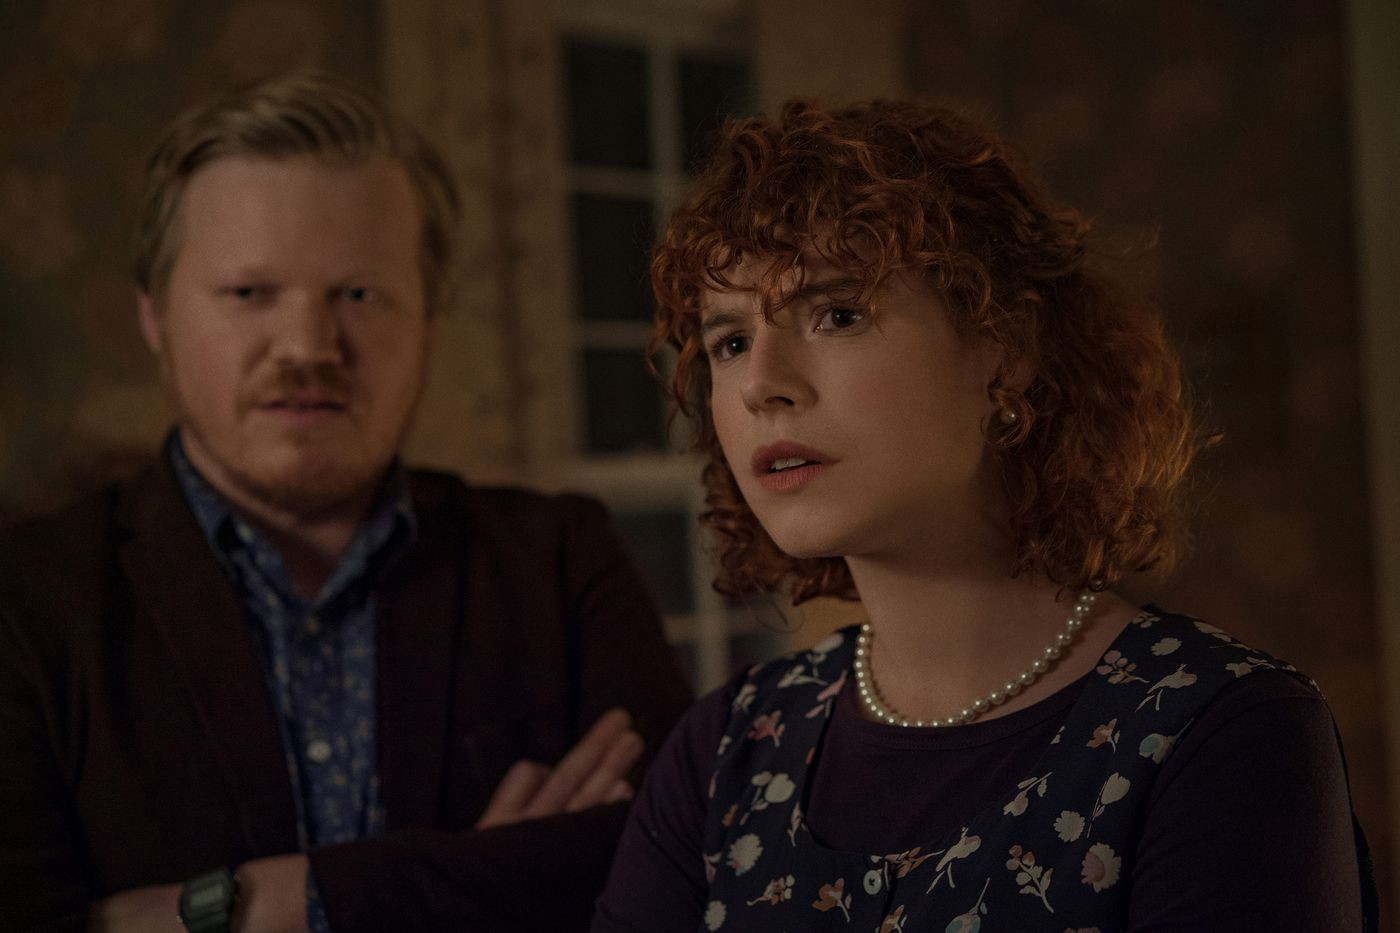 The young woman played by Jessie Buckley in the film I'm Thinking of Ending Things